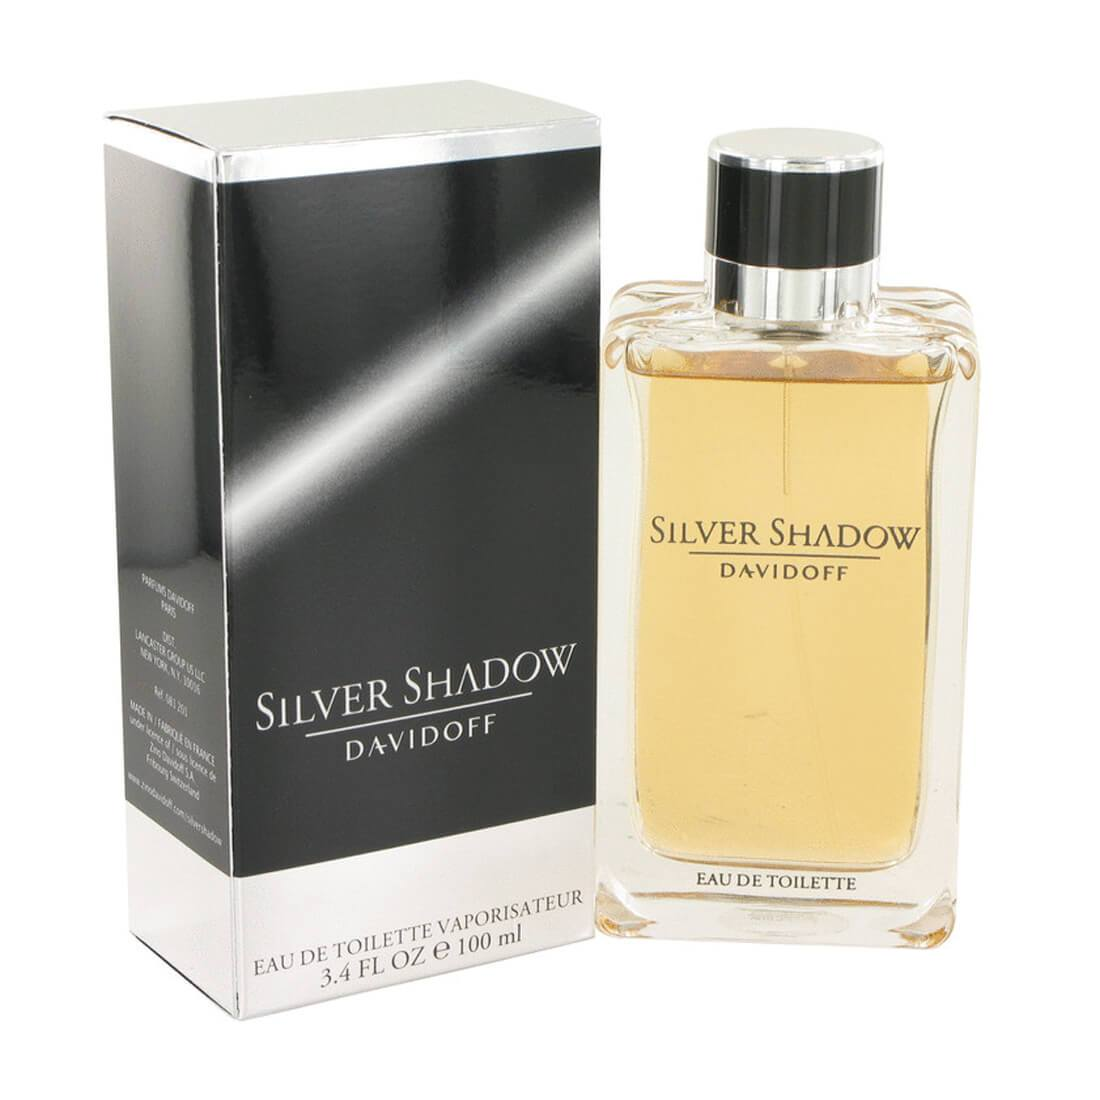 Davidoff Silver Shadow Perfume - 100ml